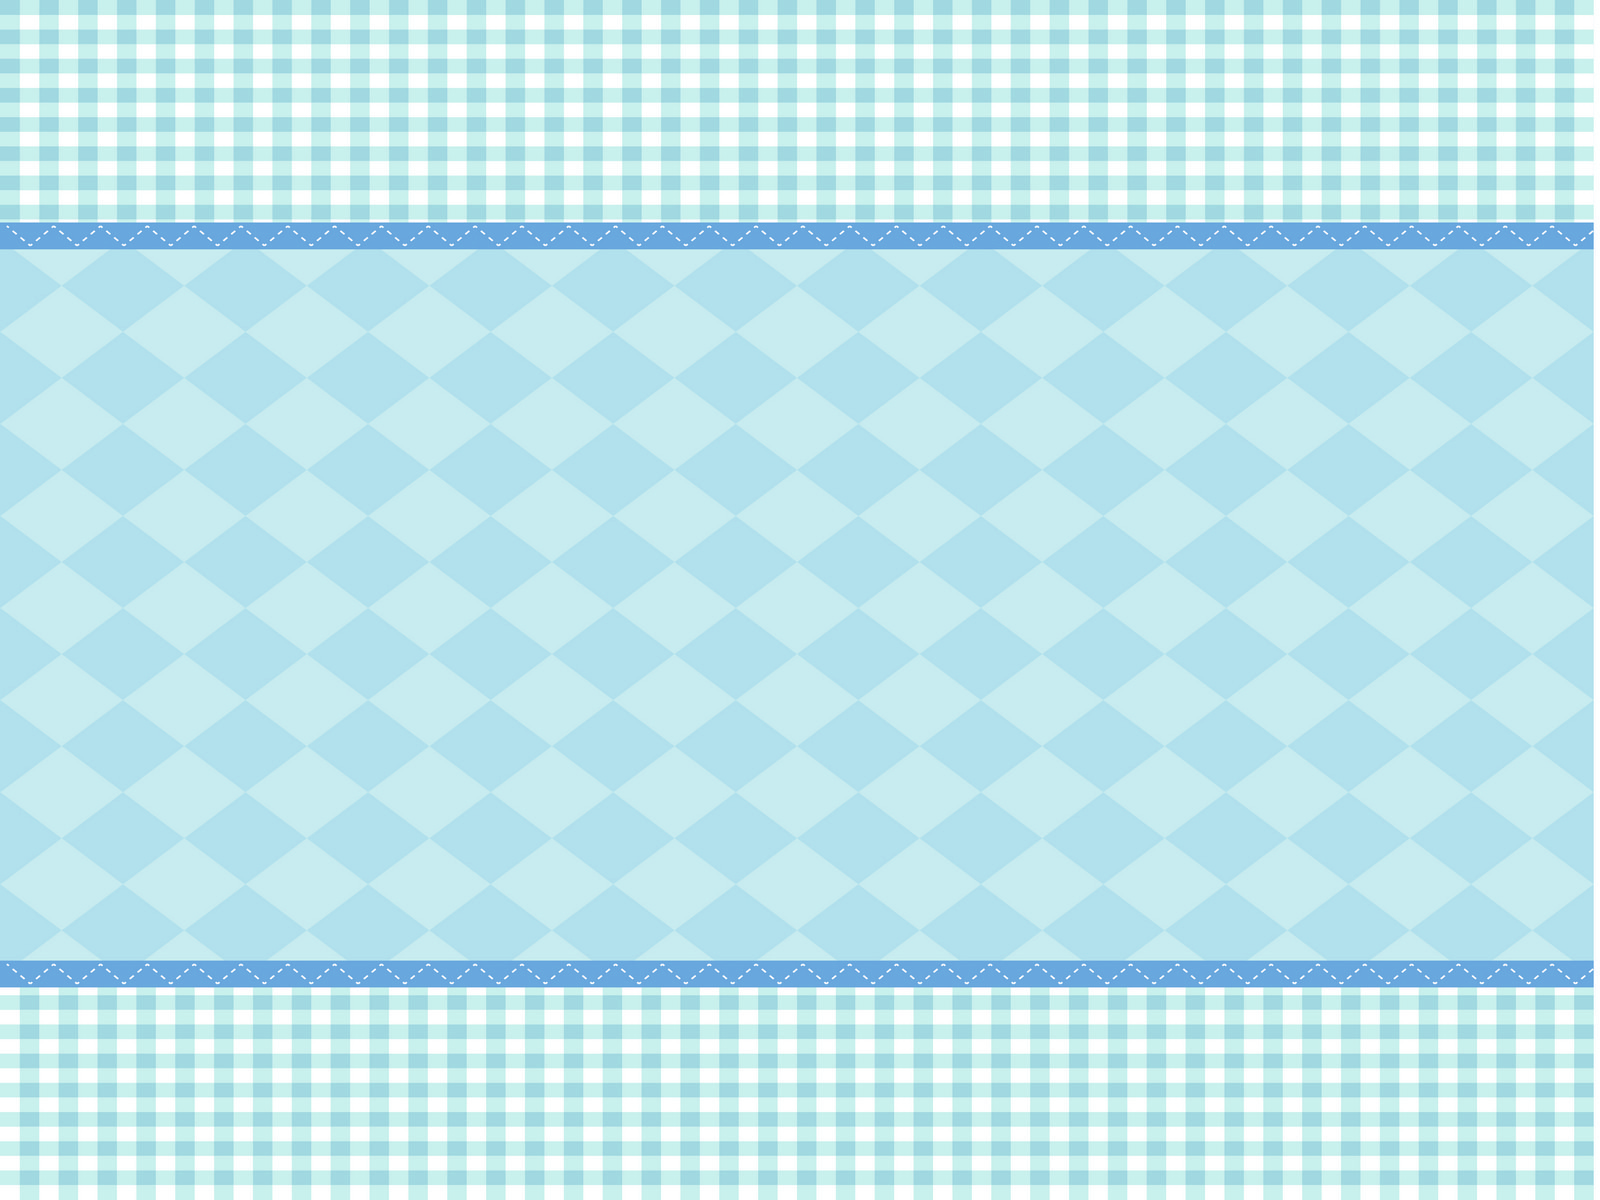 Blue Diamond Pattern PPT Backgrounds